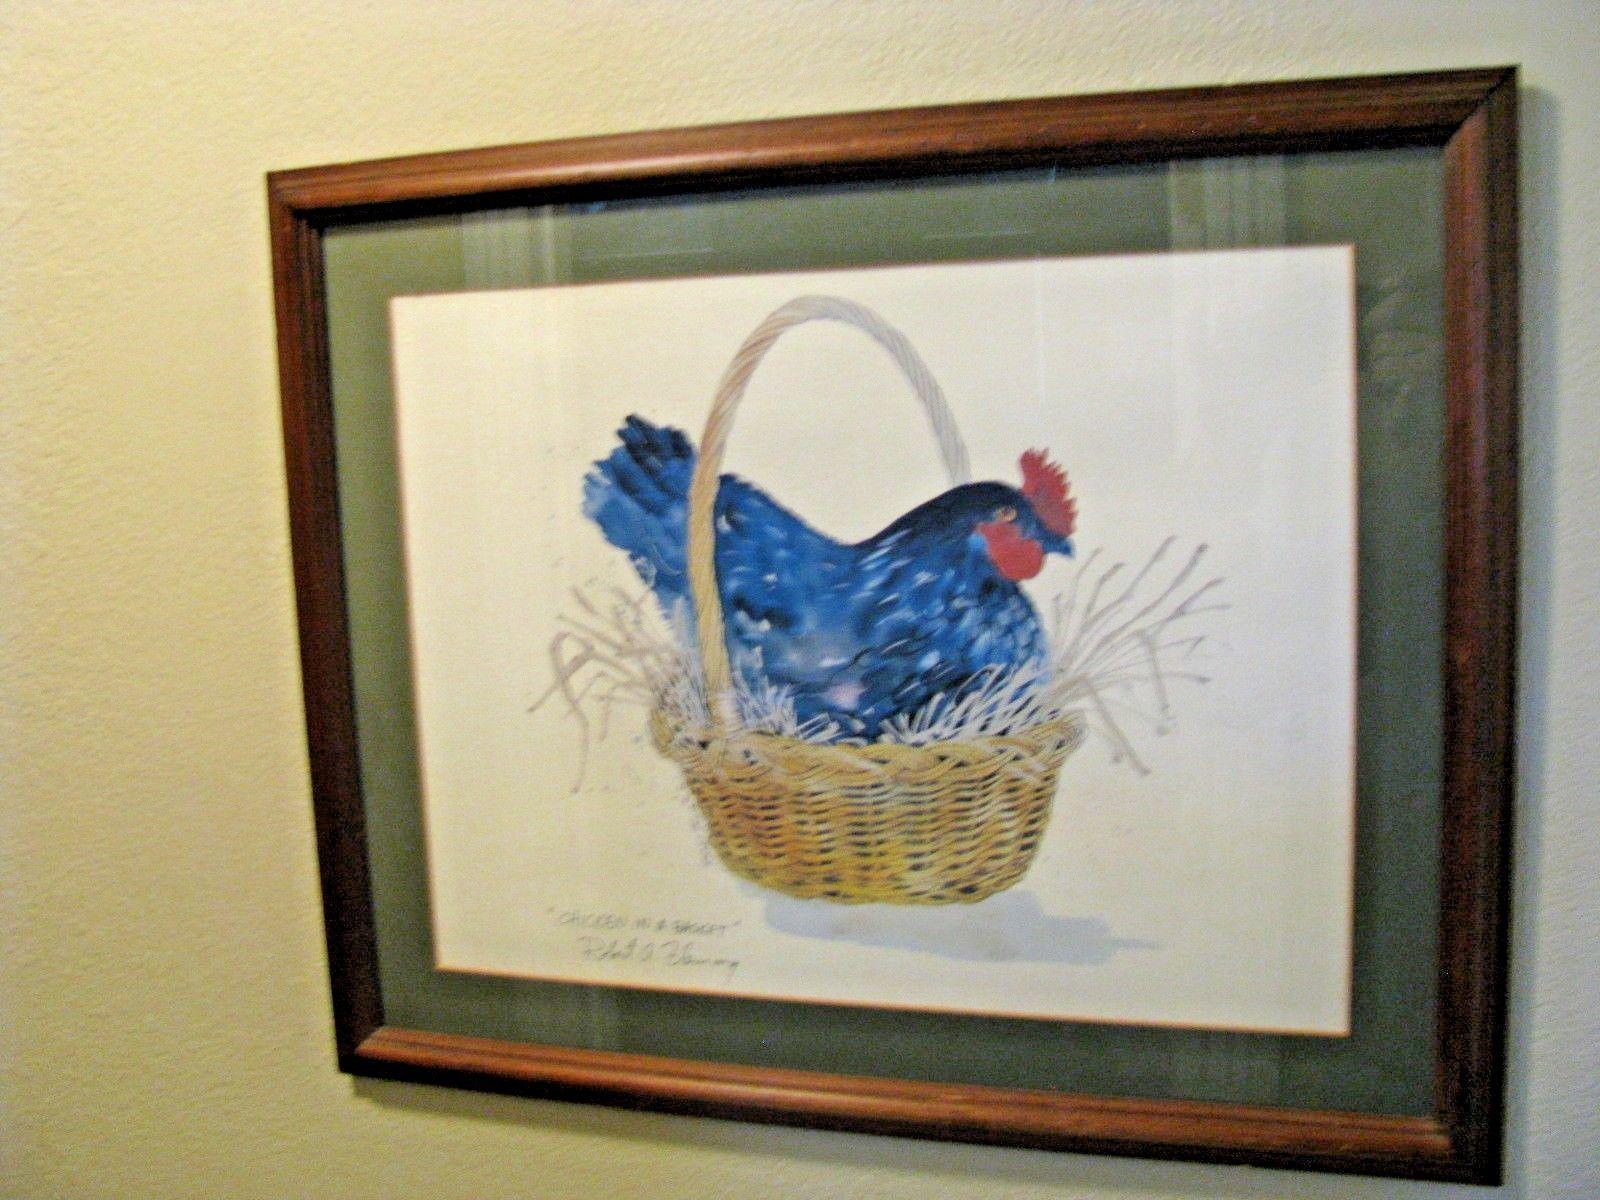 Primary image for Robert A. Fleming 'Chicken in a Basket' Signed Lithograph Print 1980 Framed Mat